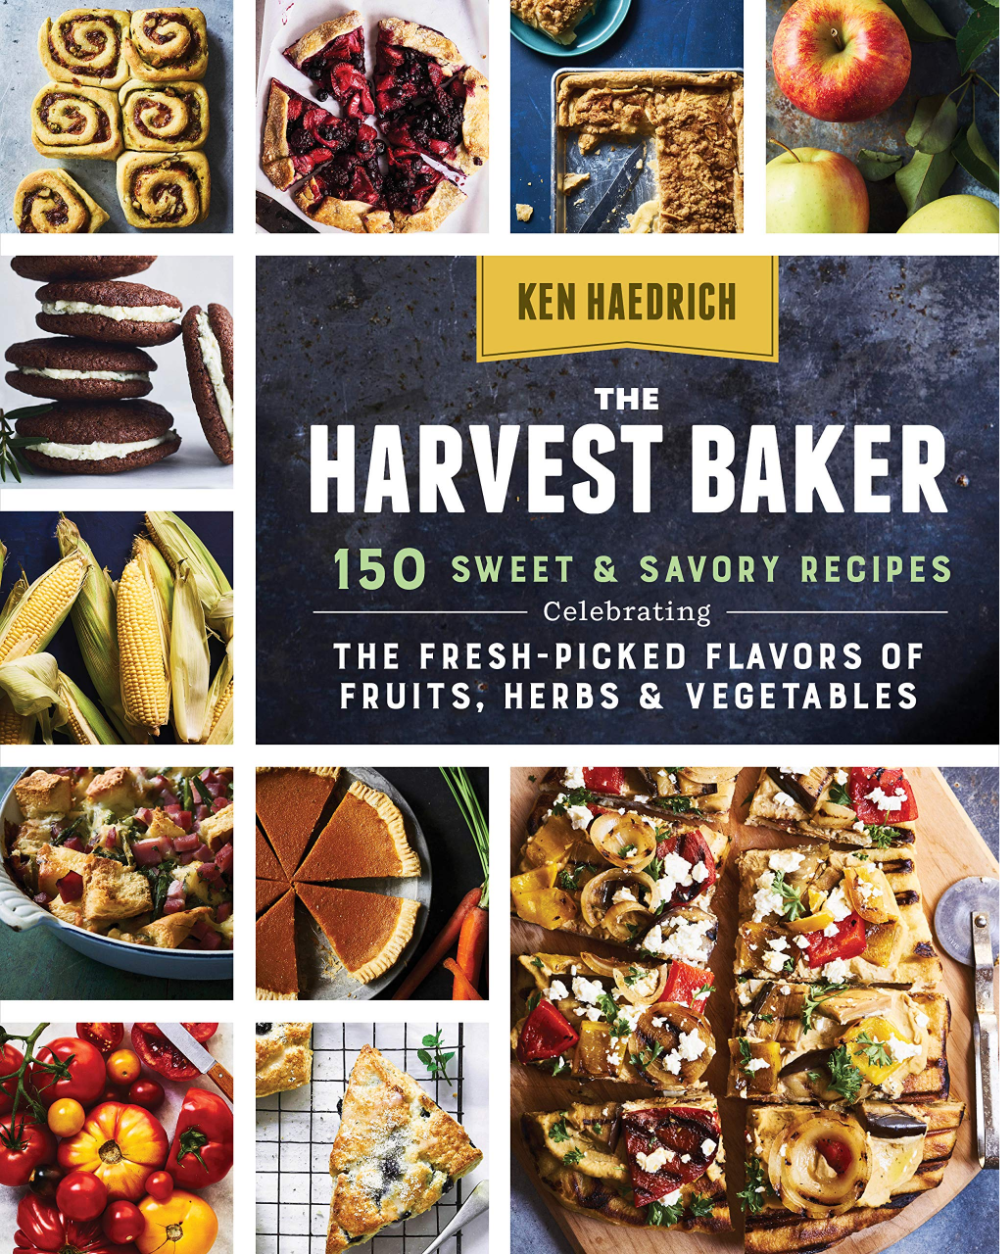 The Harvest Baker - 150 Sweet & Savory Recipes